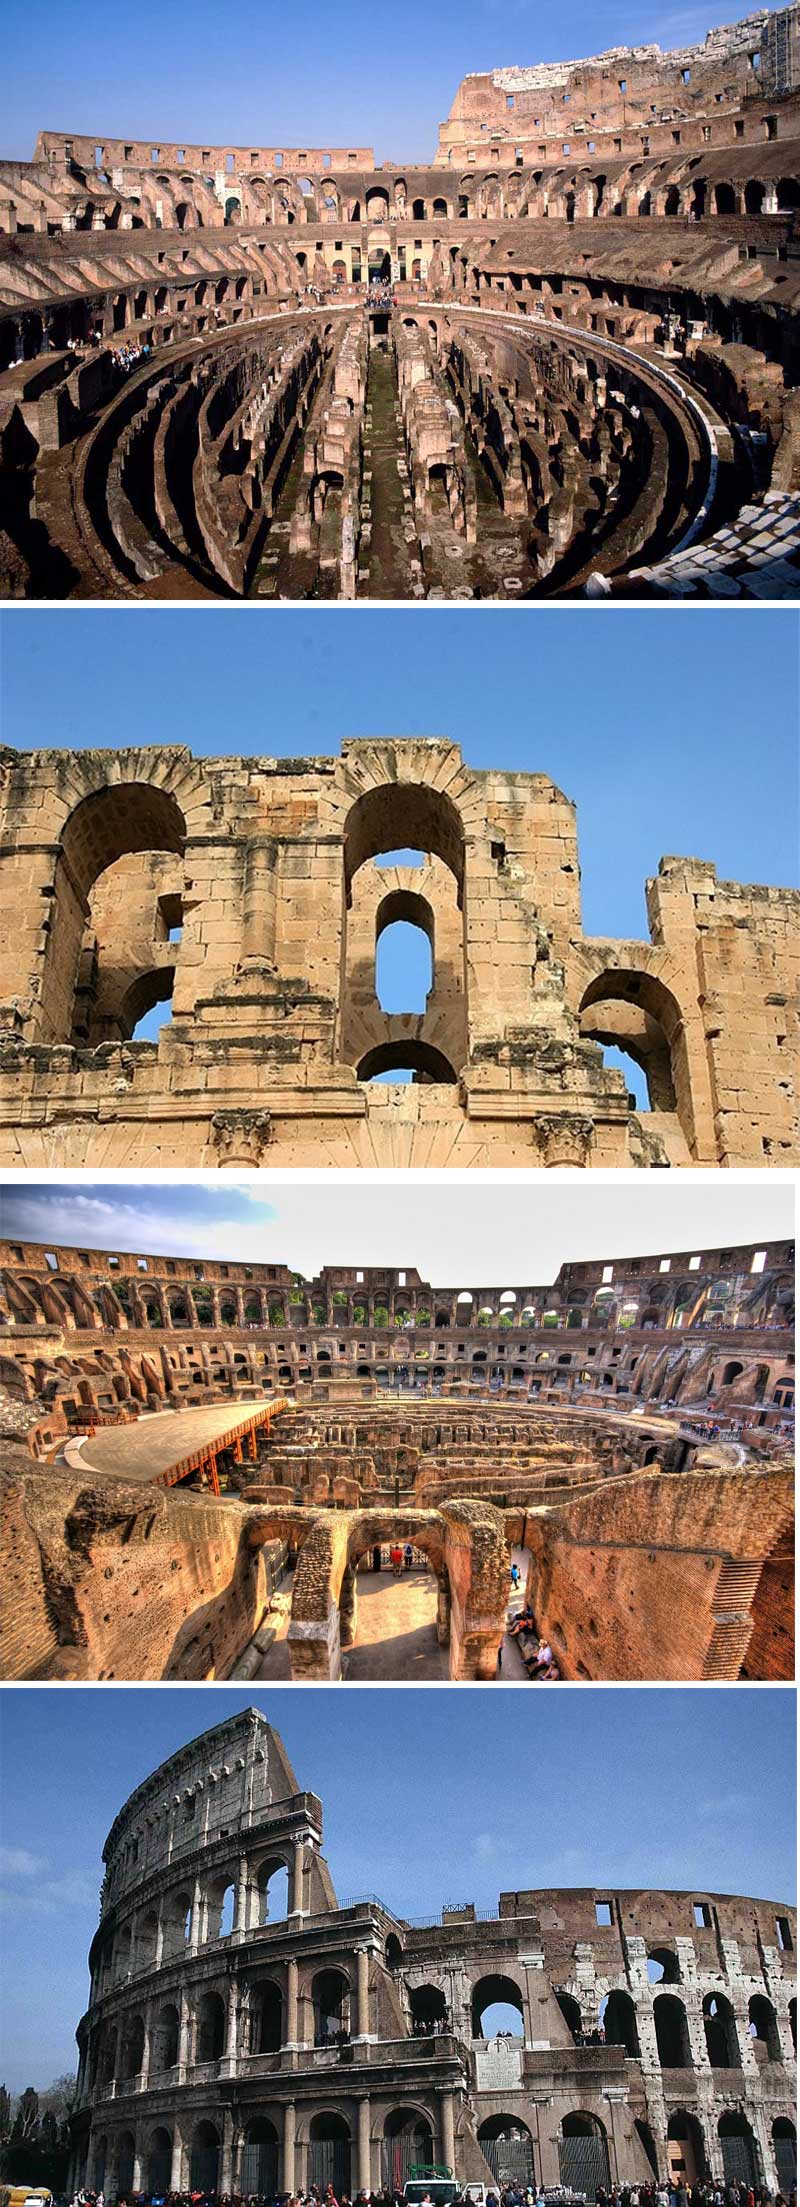 Ruins of the Colosseum